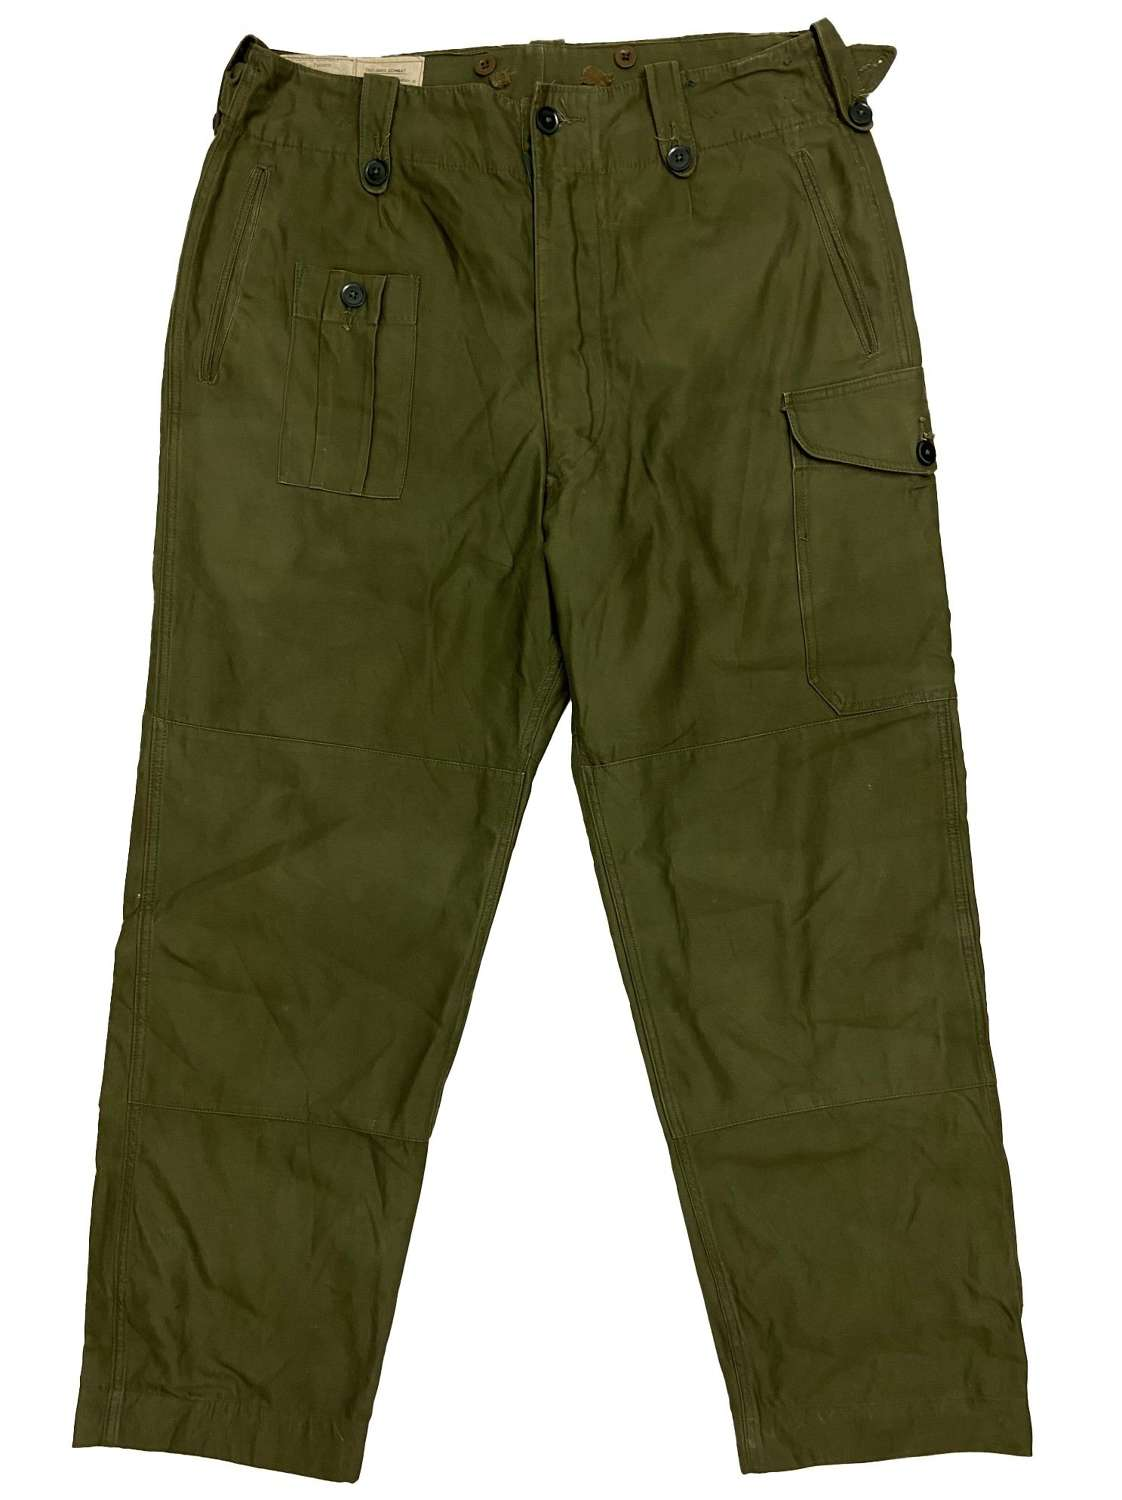 Original 1966 Dated British Army 1960 Pattern Combat Trousers - Size 6